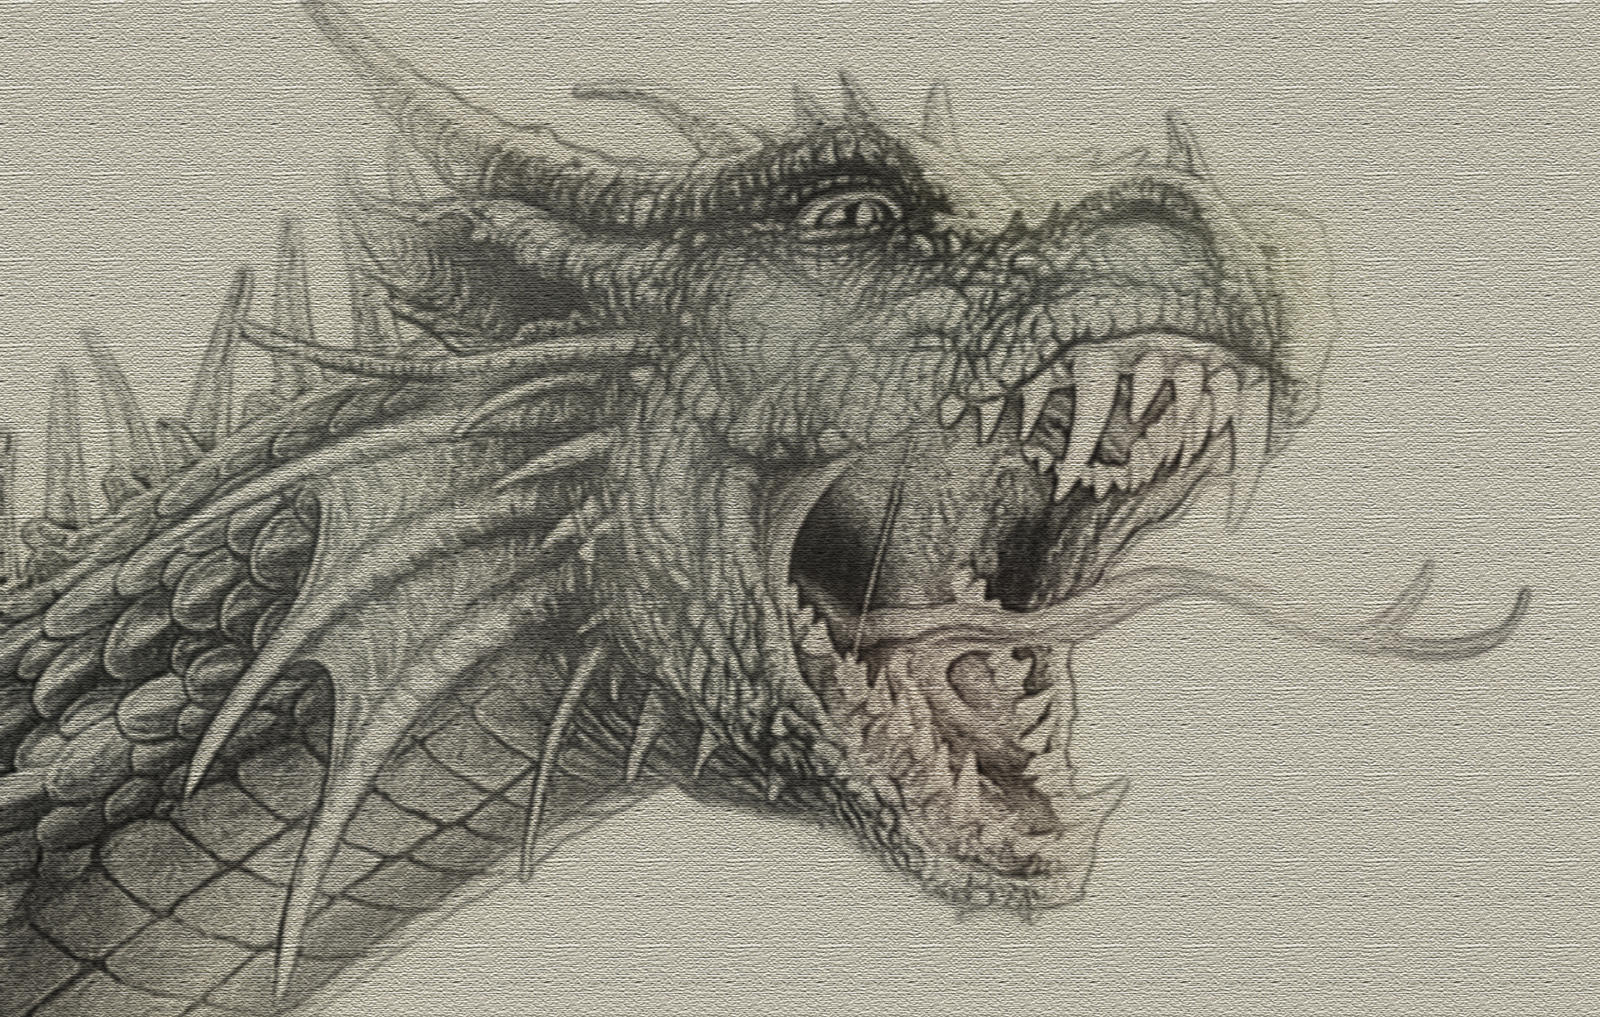 Detailed dragon sketch by zapdosify on deviantart for Cool detailed drawings